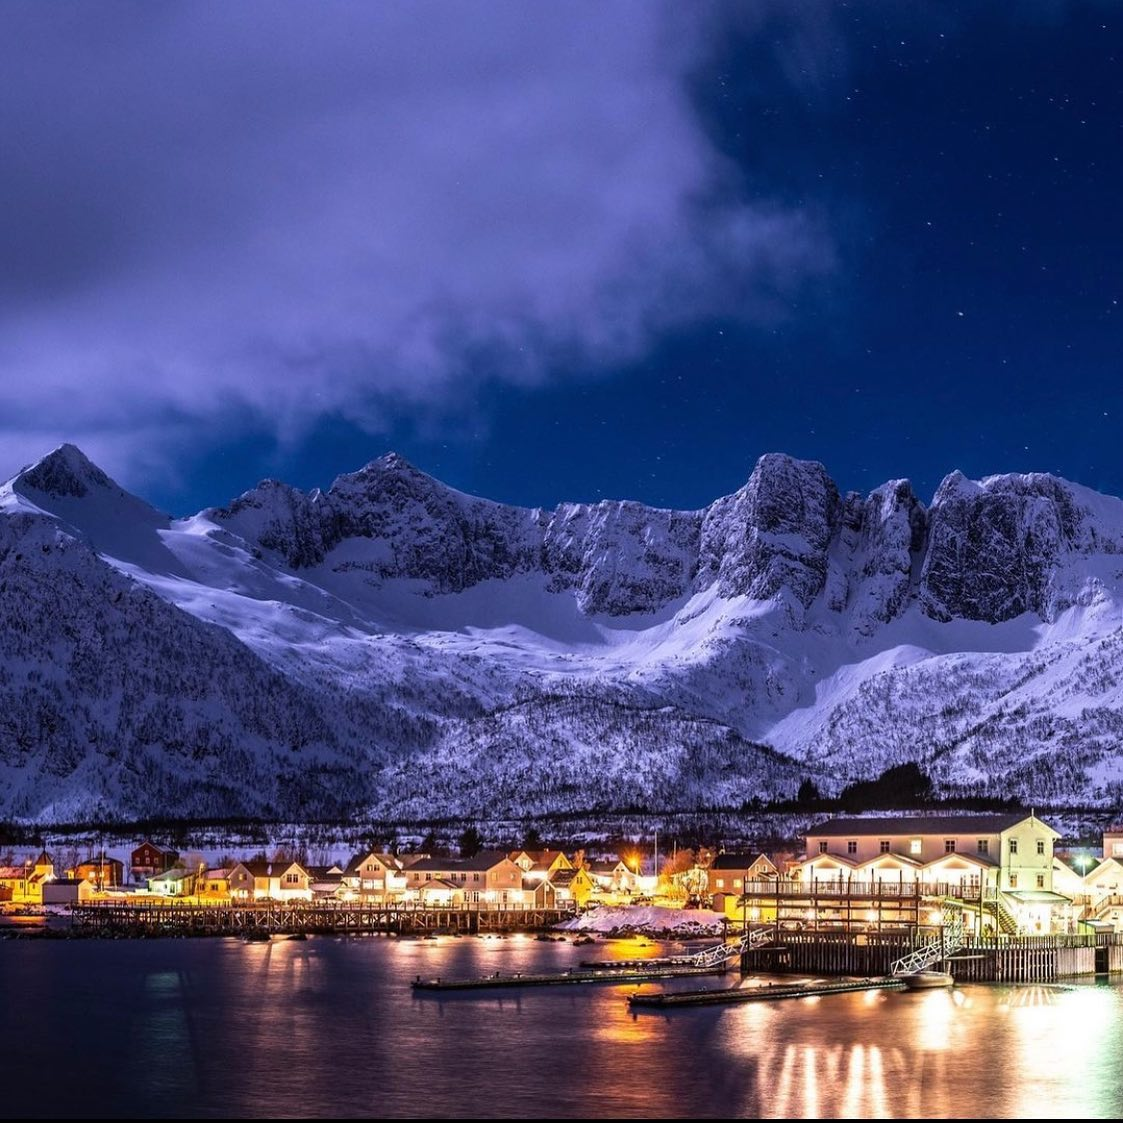 Mefjord Brygge overview by stevefleming1